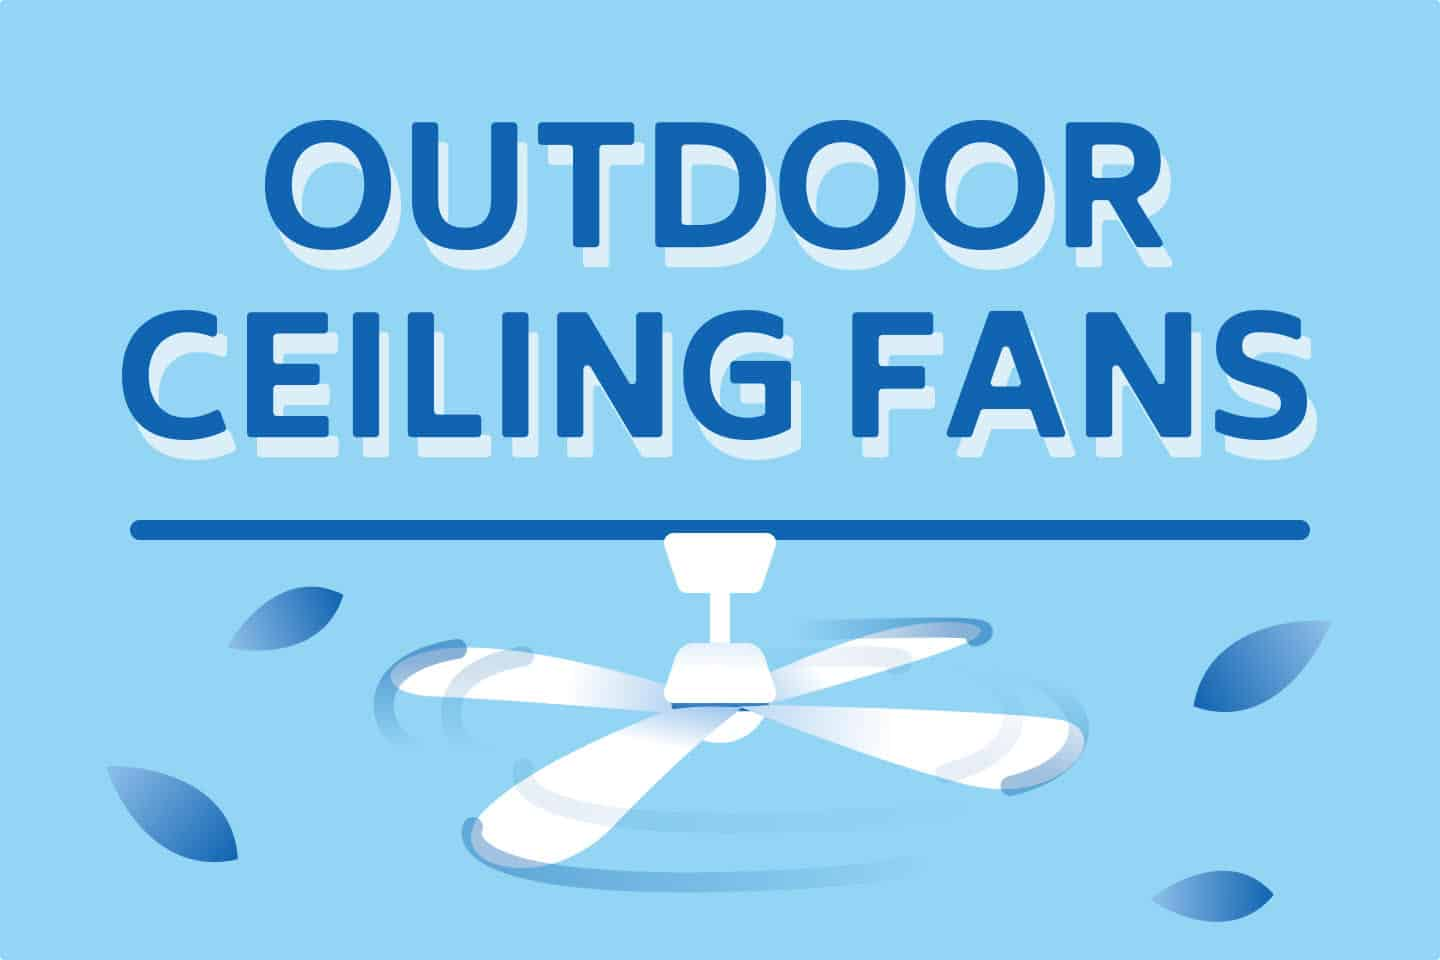 ❄️ Best Outdoor Ceiling Fans for This Summer!